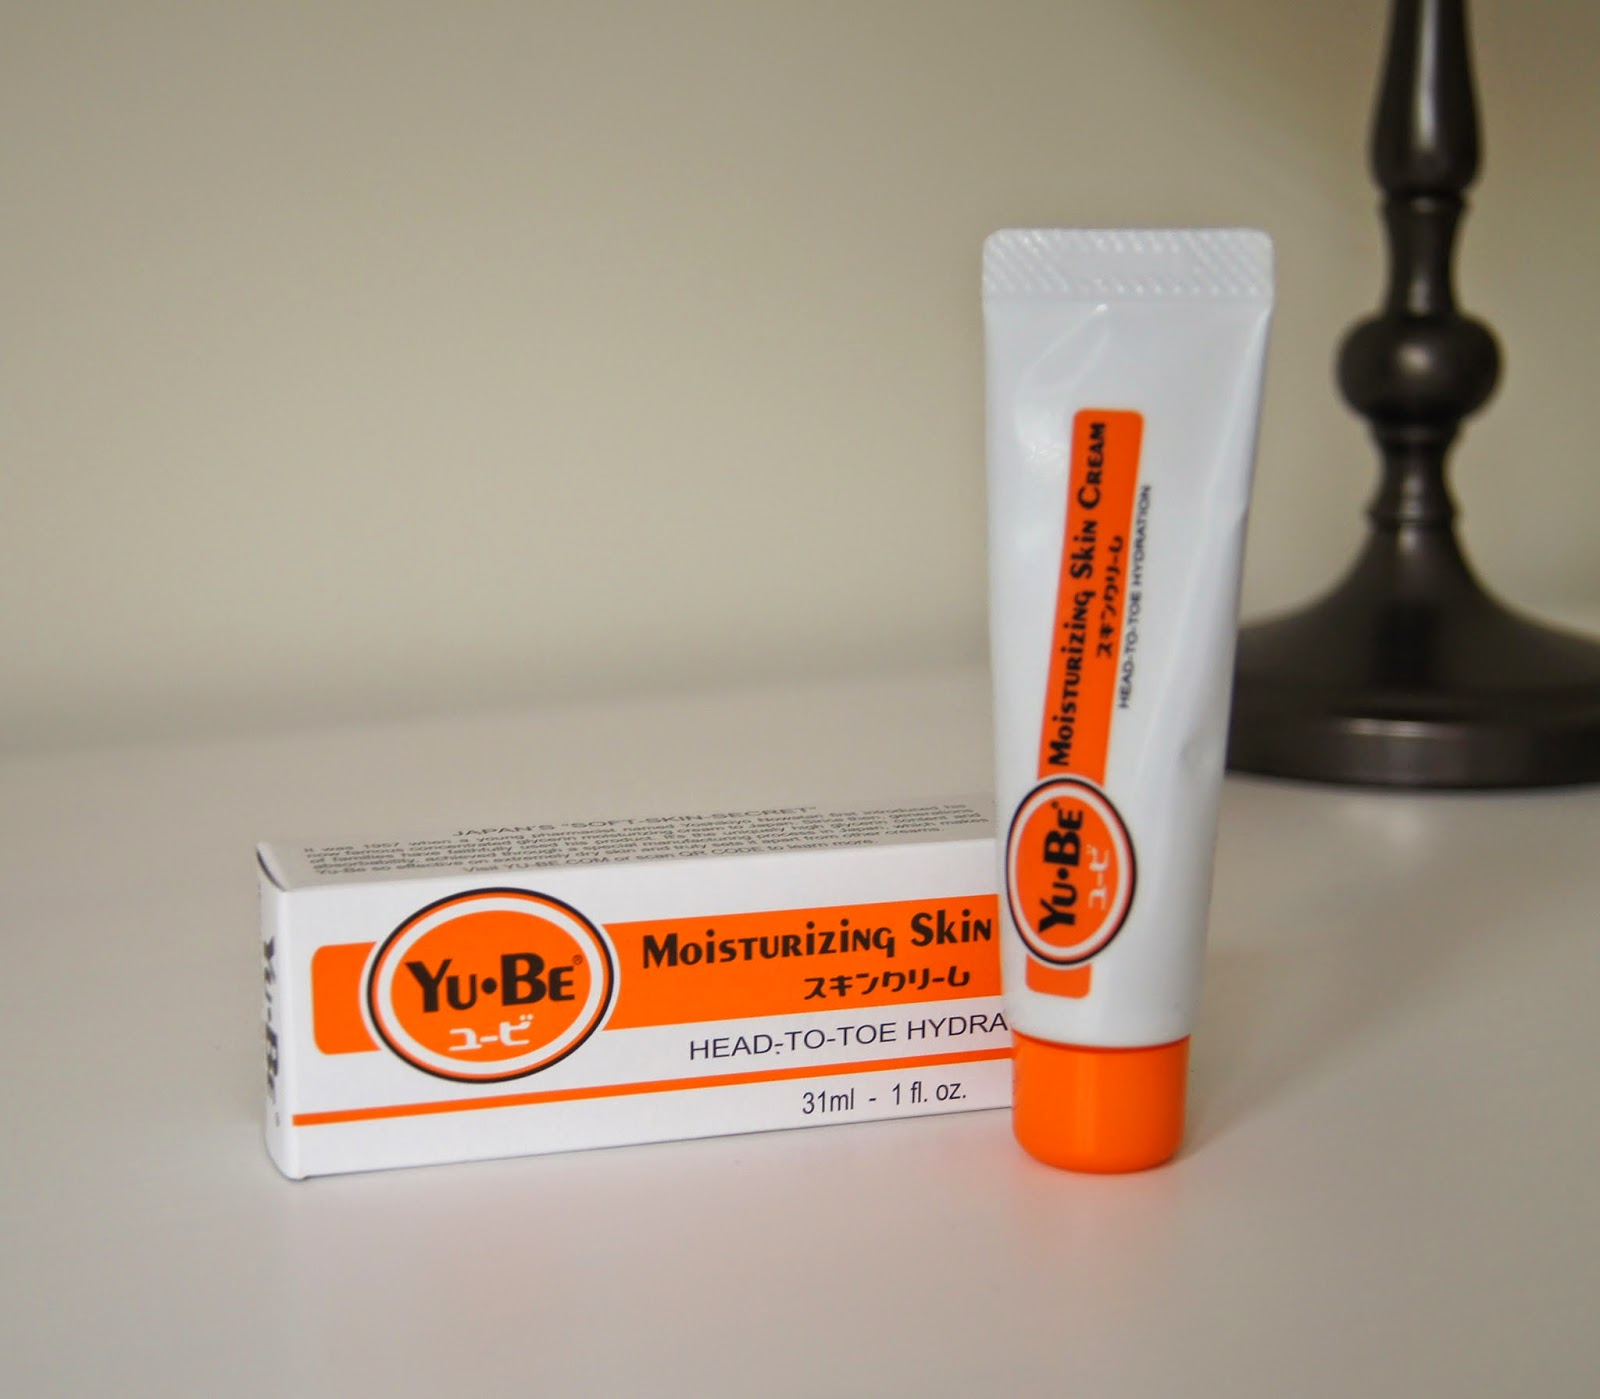 yu-be moisturizing skin cream body balm review